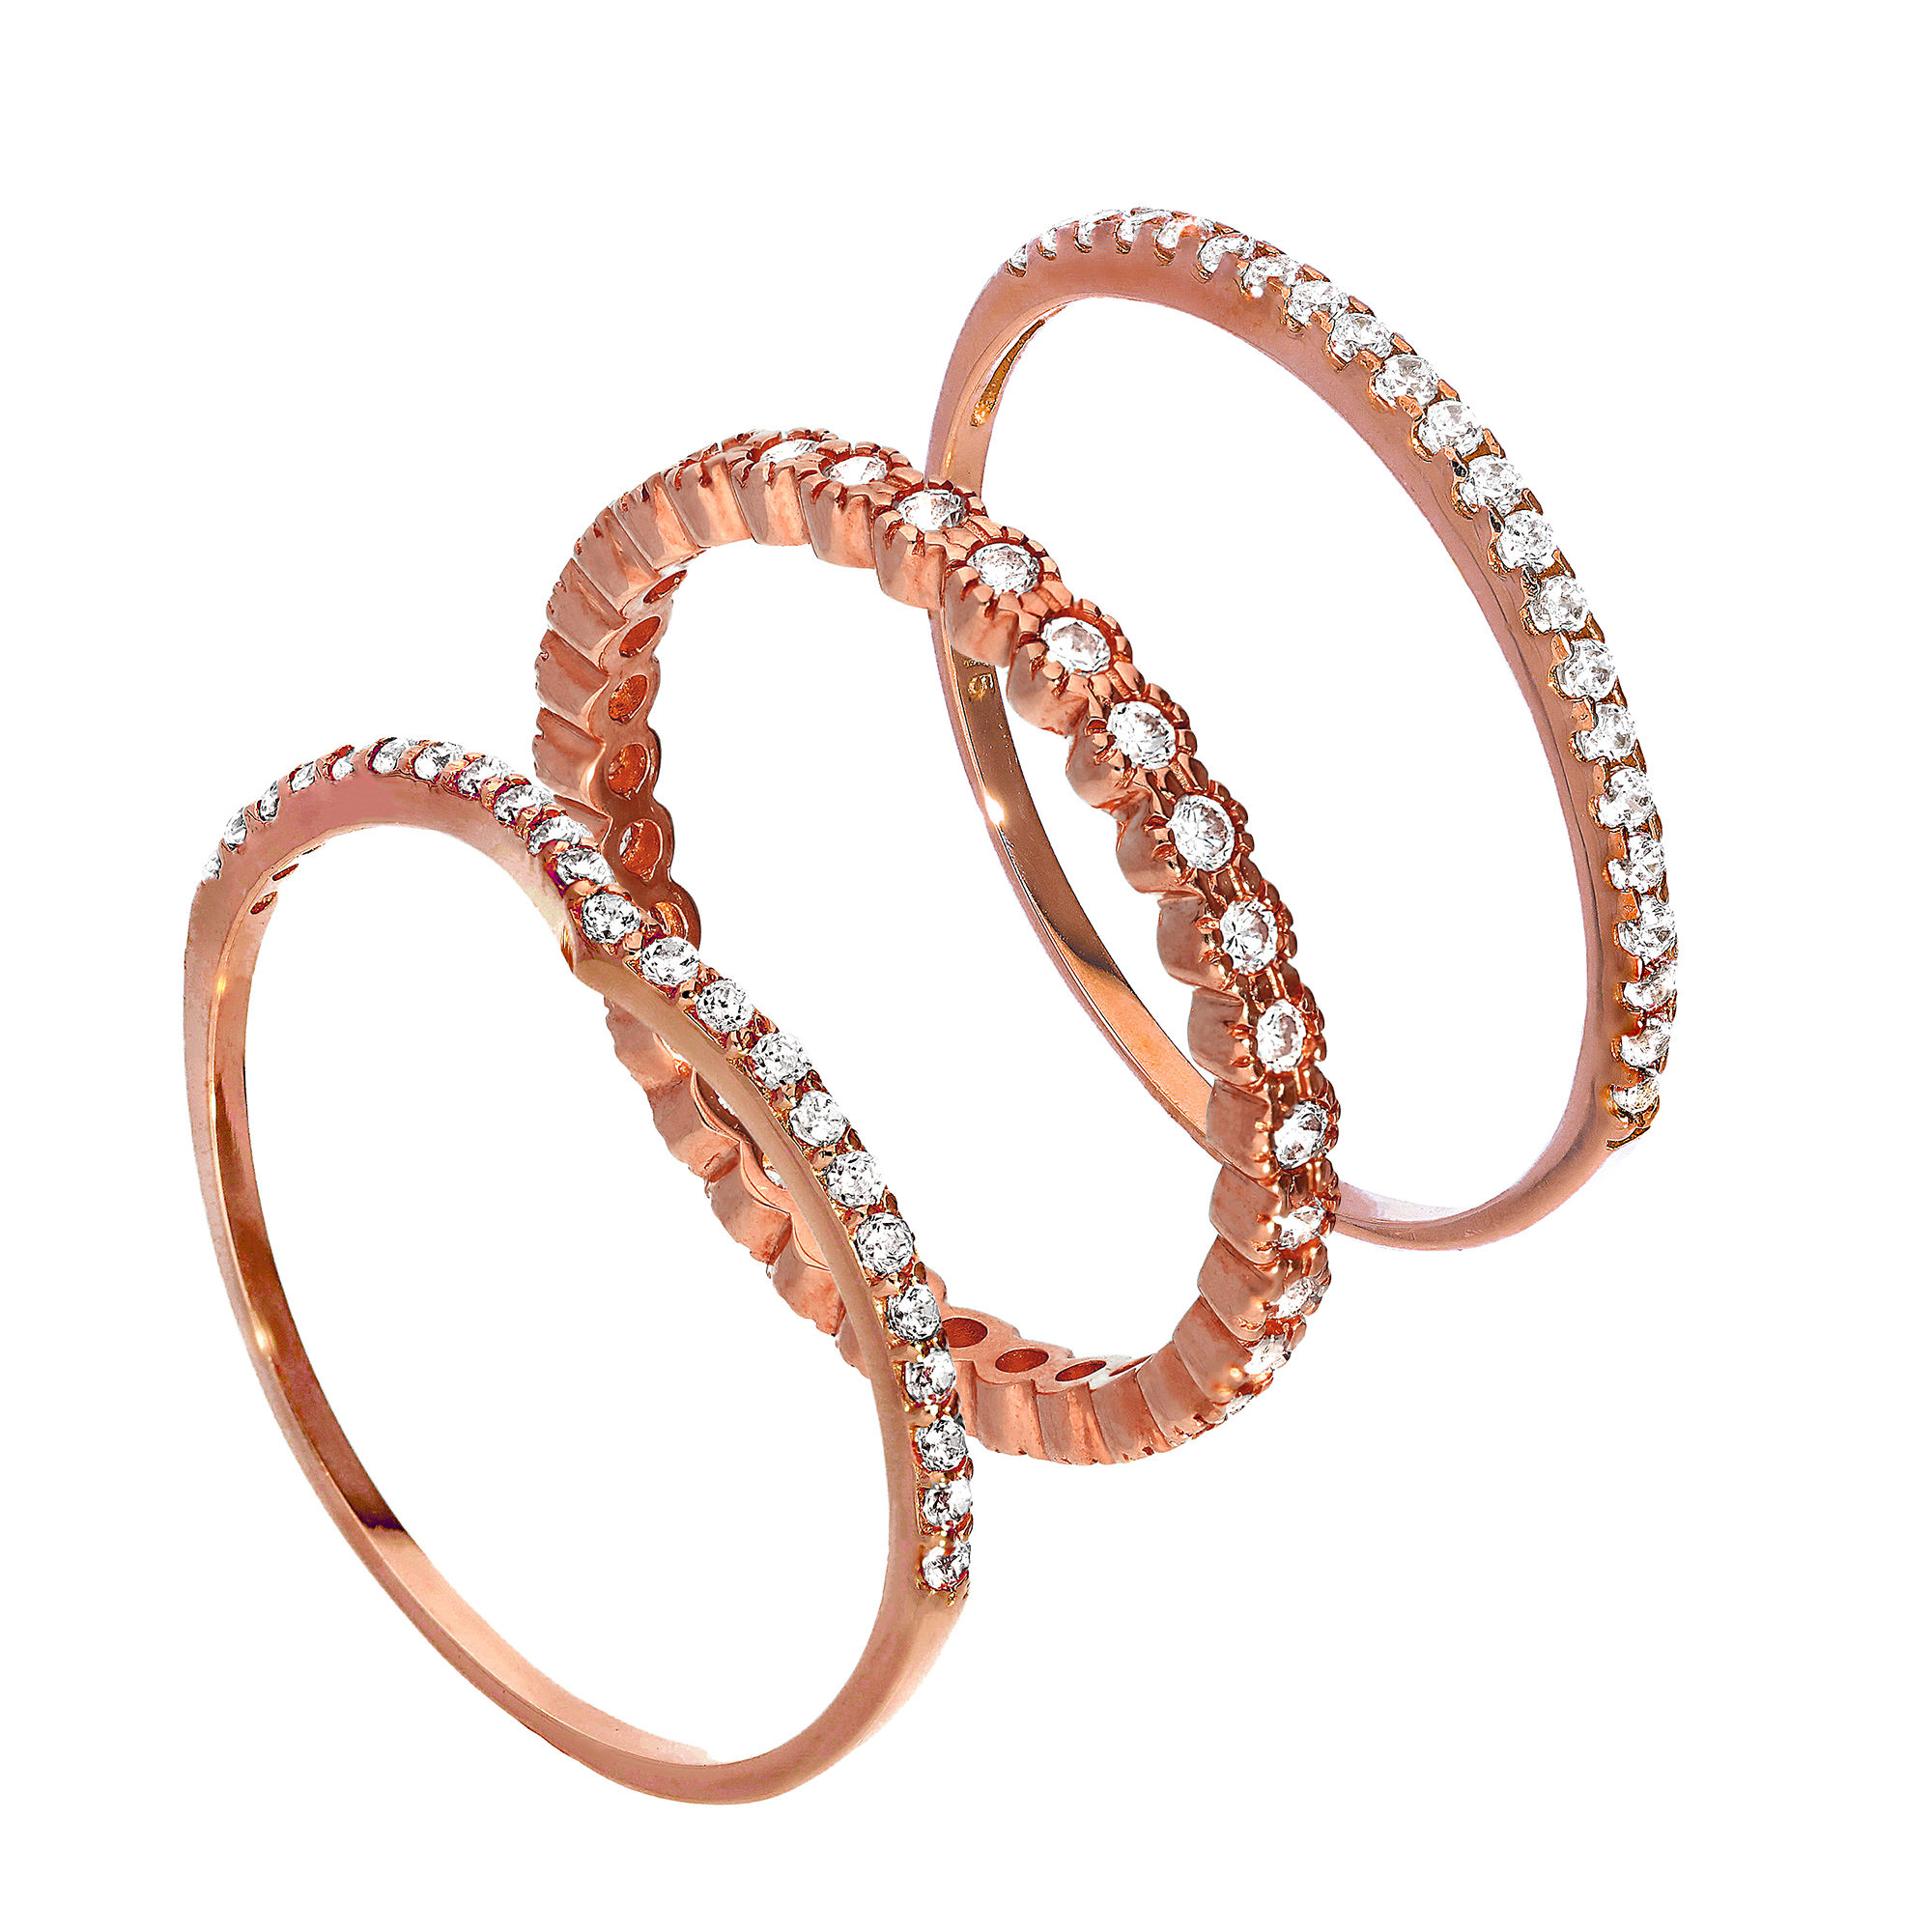 Details About 9ct Rose Gold Wishbone & Eternity Cz Sparkle Stacking Rings Set Valentines Love Throughout Recent Sparkling Wishbone Rings (View 13 of 25)